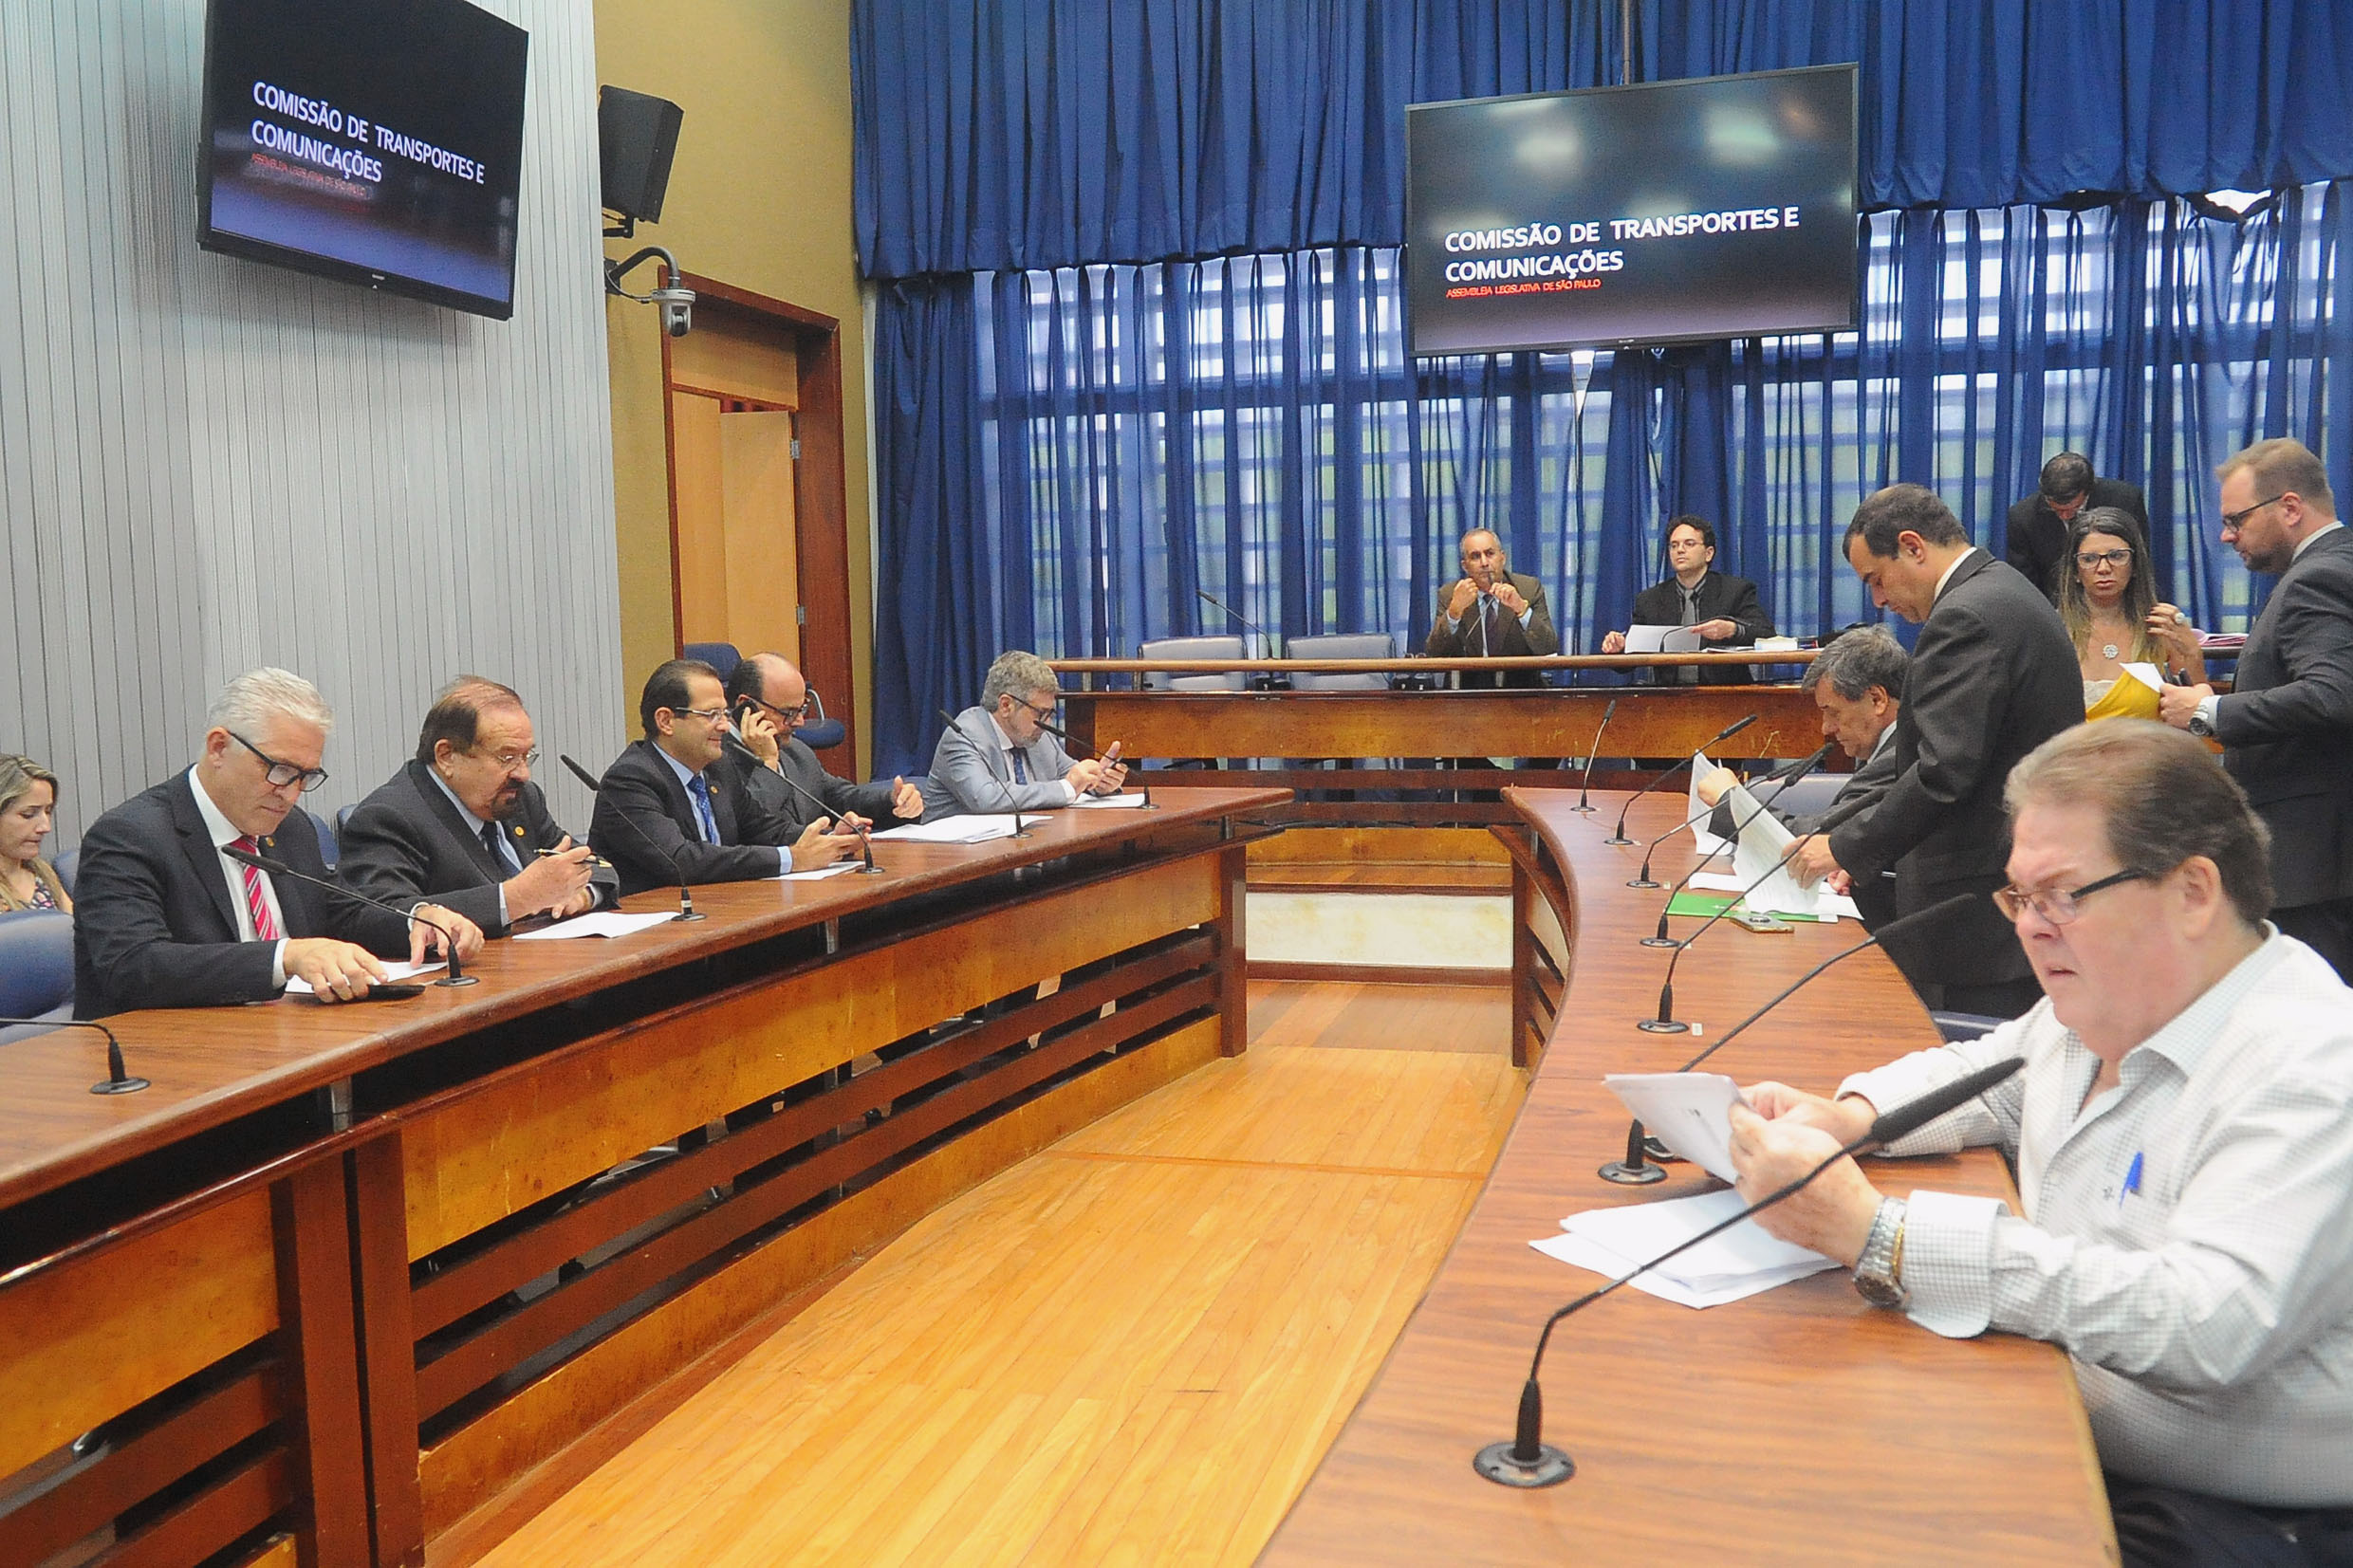 Parlamentares na comissão <a style='float:right' href='https://www3.al.sp.gov.br/repositorio/noticia/N-12-2018/fg228639.jpg' target=_blank><img src='/_img/material-file-download-white.png' width='14px' alt='Clique para baixar a imagem'></a>